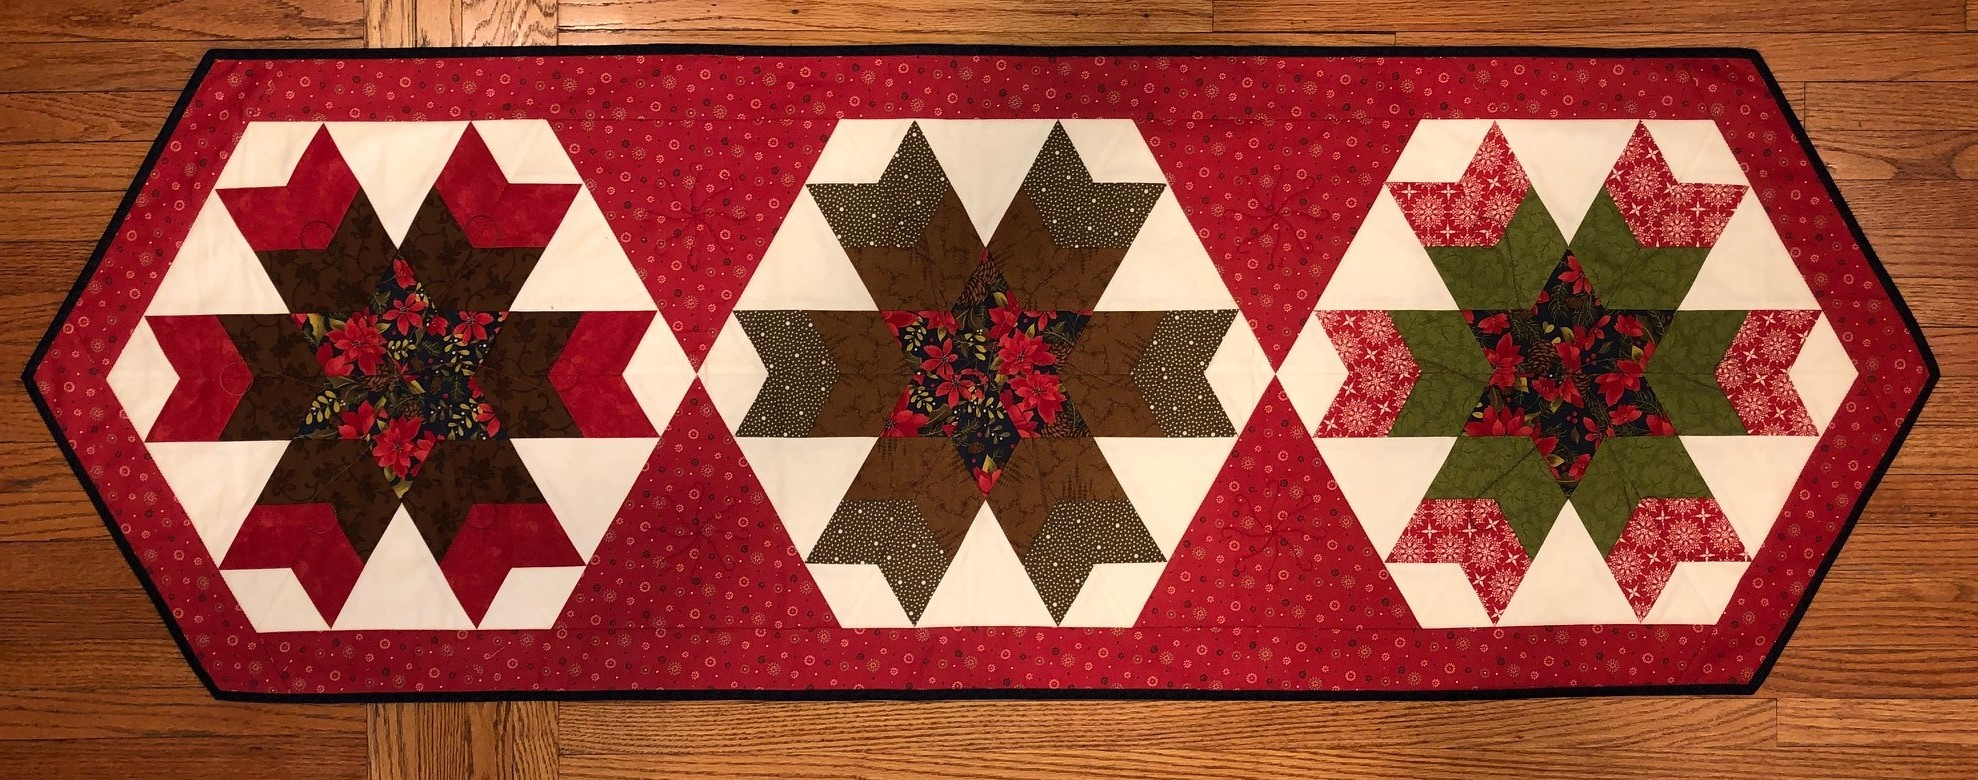 snowflake table decorations.htm magic snowflake table runner  magic snowflake table runner